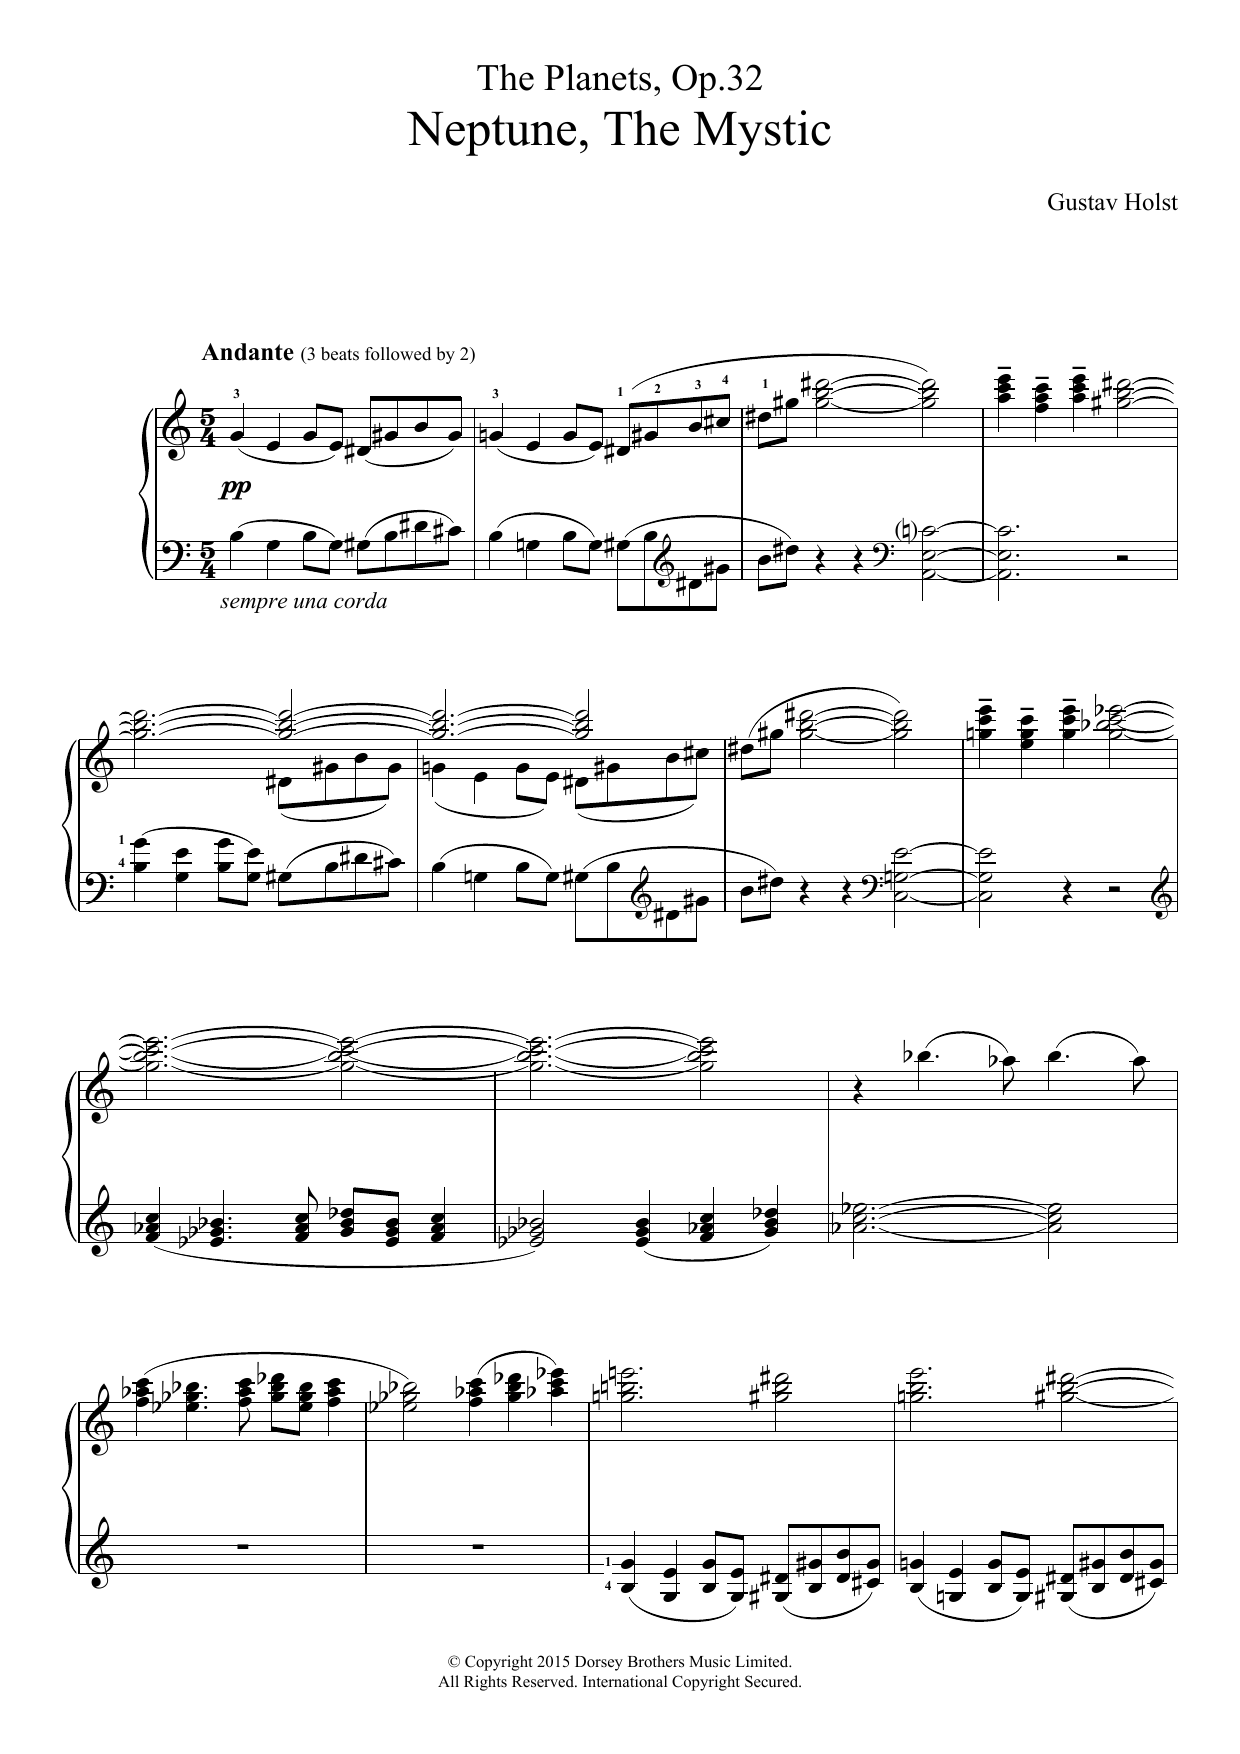 The Planets, Op. 32 - Neptune, The Mystic Sheet Music